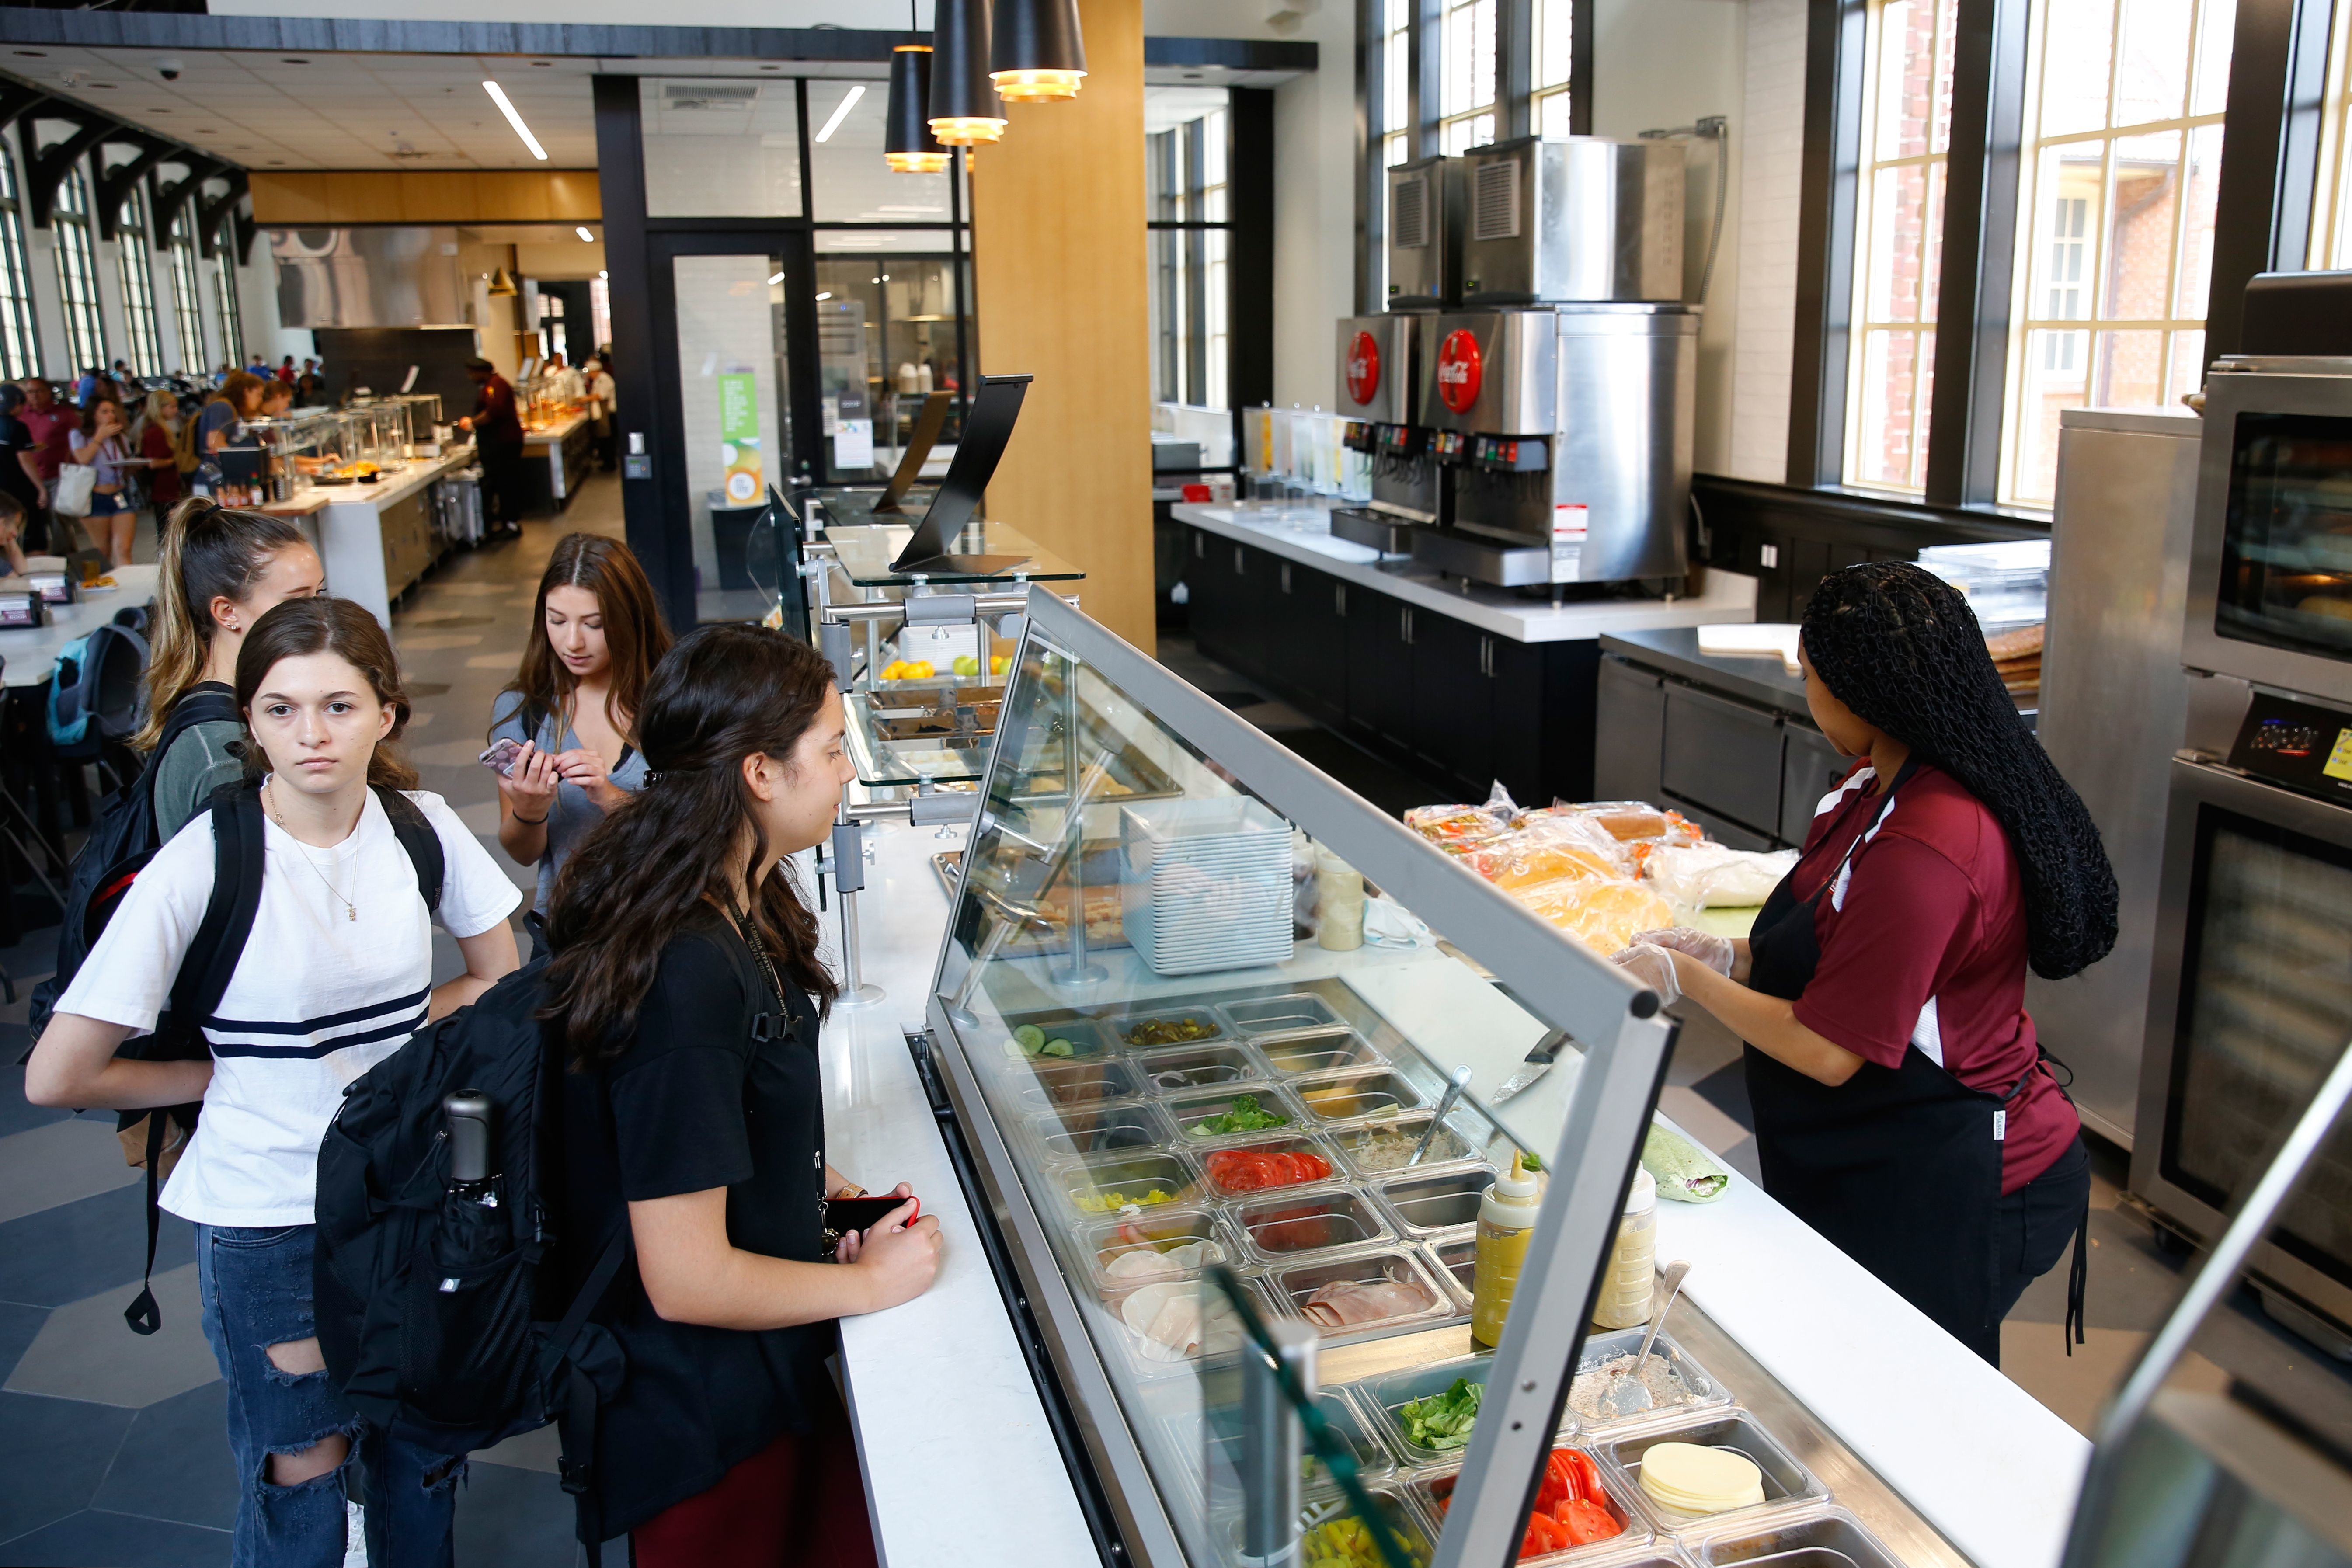 Students order from a new deli area of the Suwanee Dining Room at Florida State University. Customers are able to chose from pre-made sandwiches or can opt to build their own.